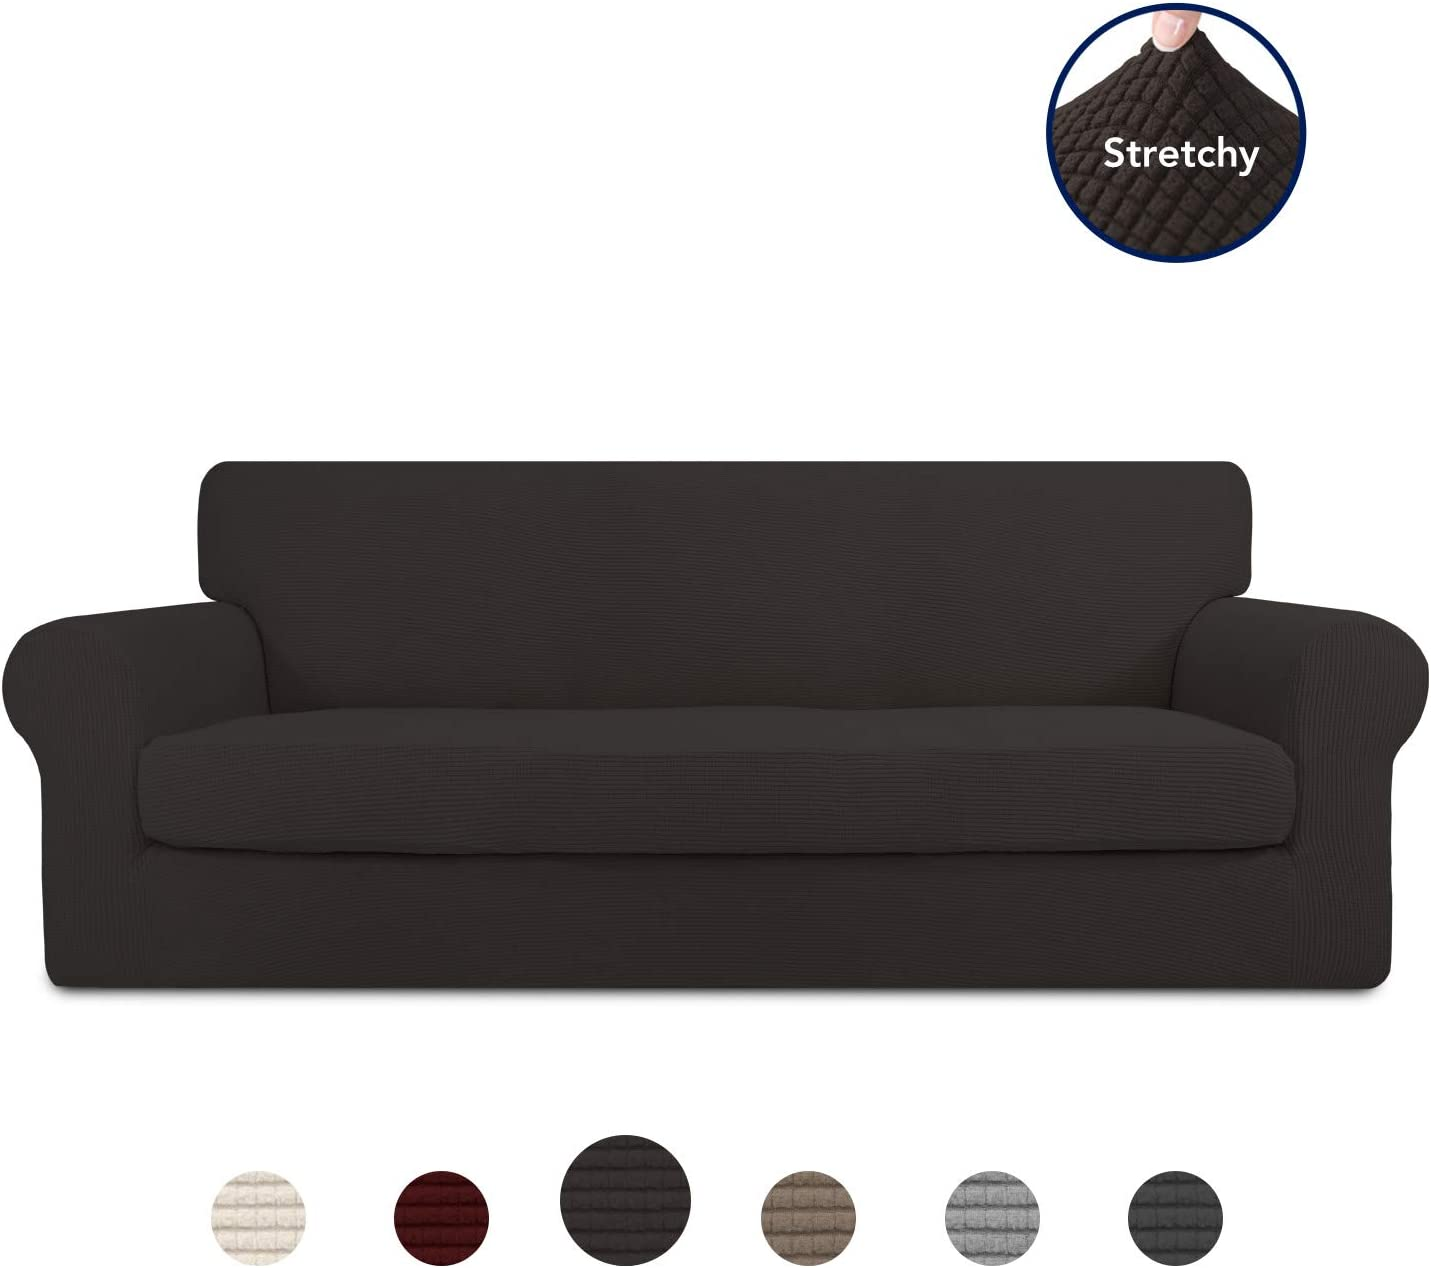 PureFit 2 Pieces Stretch Slipcover for 3 Cushion Couch – Spandex Jacquard Non-Slip Soft Fitted Sofa Couch Cover, Washable Furniture Protector with Anti-Skid Elastic Bottom for Kids (Sofa, Chocolate)